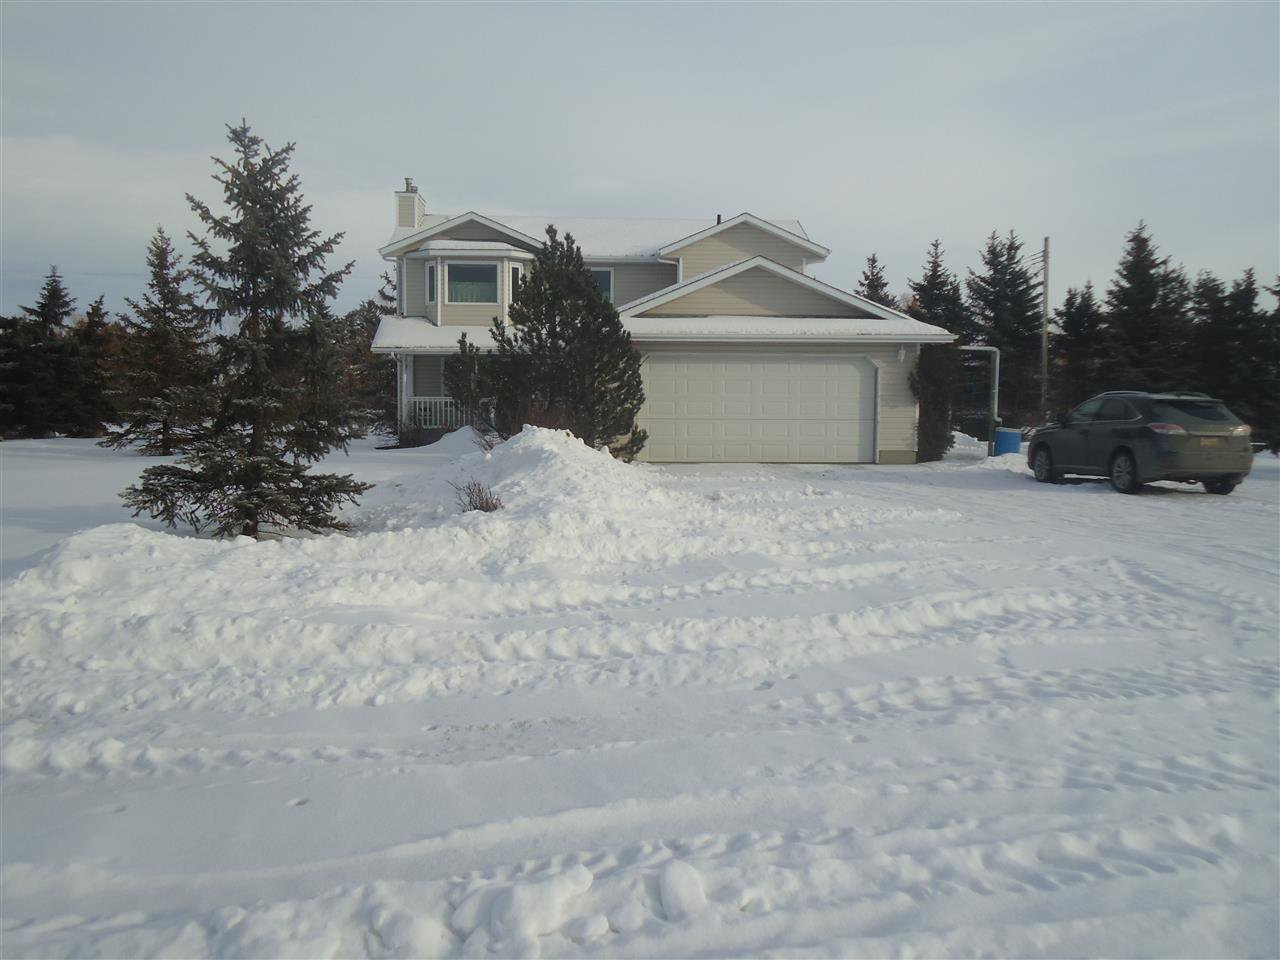 Main Photo: 12125 41 Avenue in Edmonton: Zone 55 House for sale : MLS®# E4186946